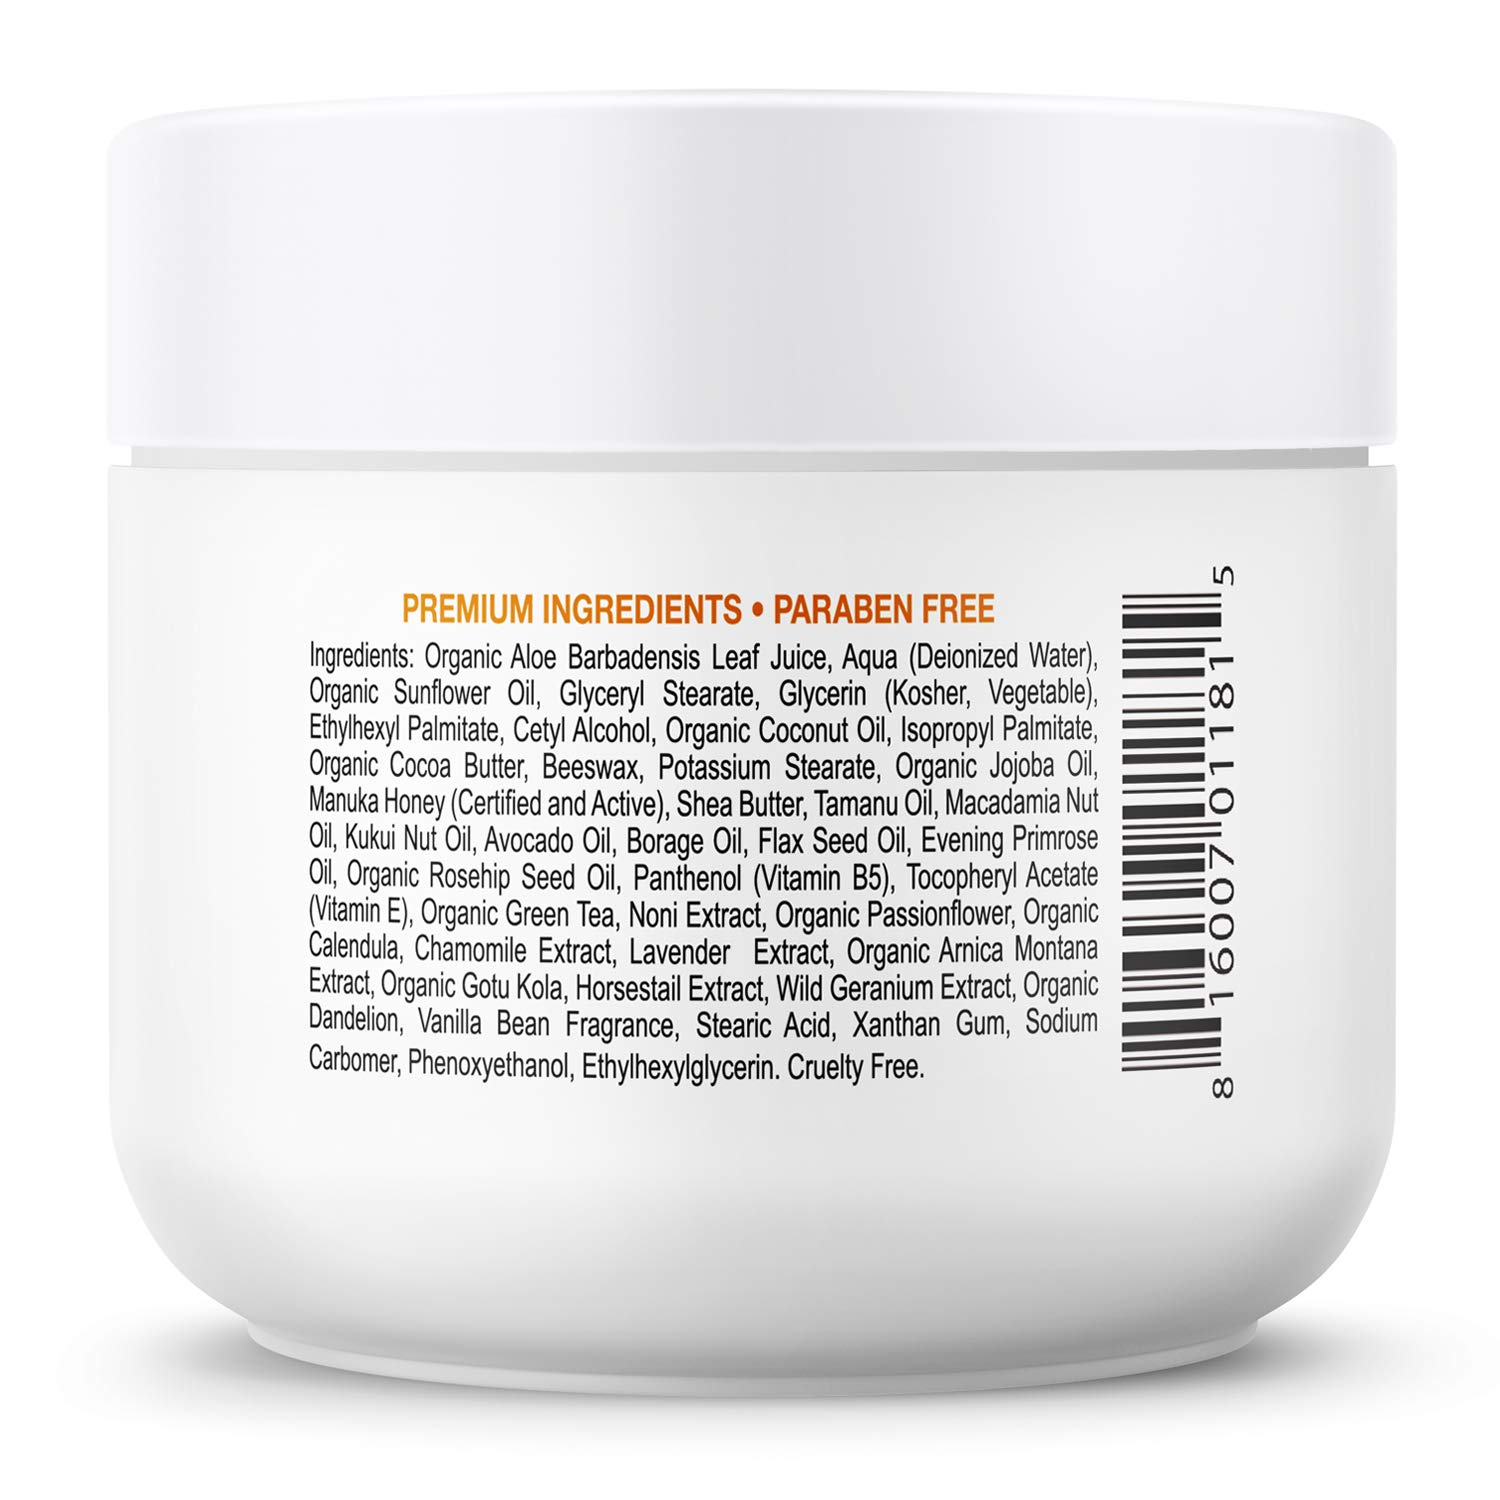 Day and Night Manuka Honey Cream for Face and Body Certified Active 16 Organic Aloe Vera Anti Aging Helps Relieve Dry Skin, Eczema, Rosacea, Shingles and Psoriasis. by Deluvia